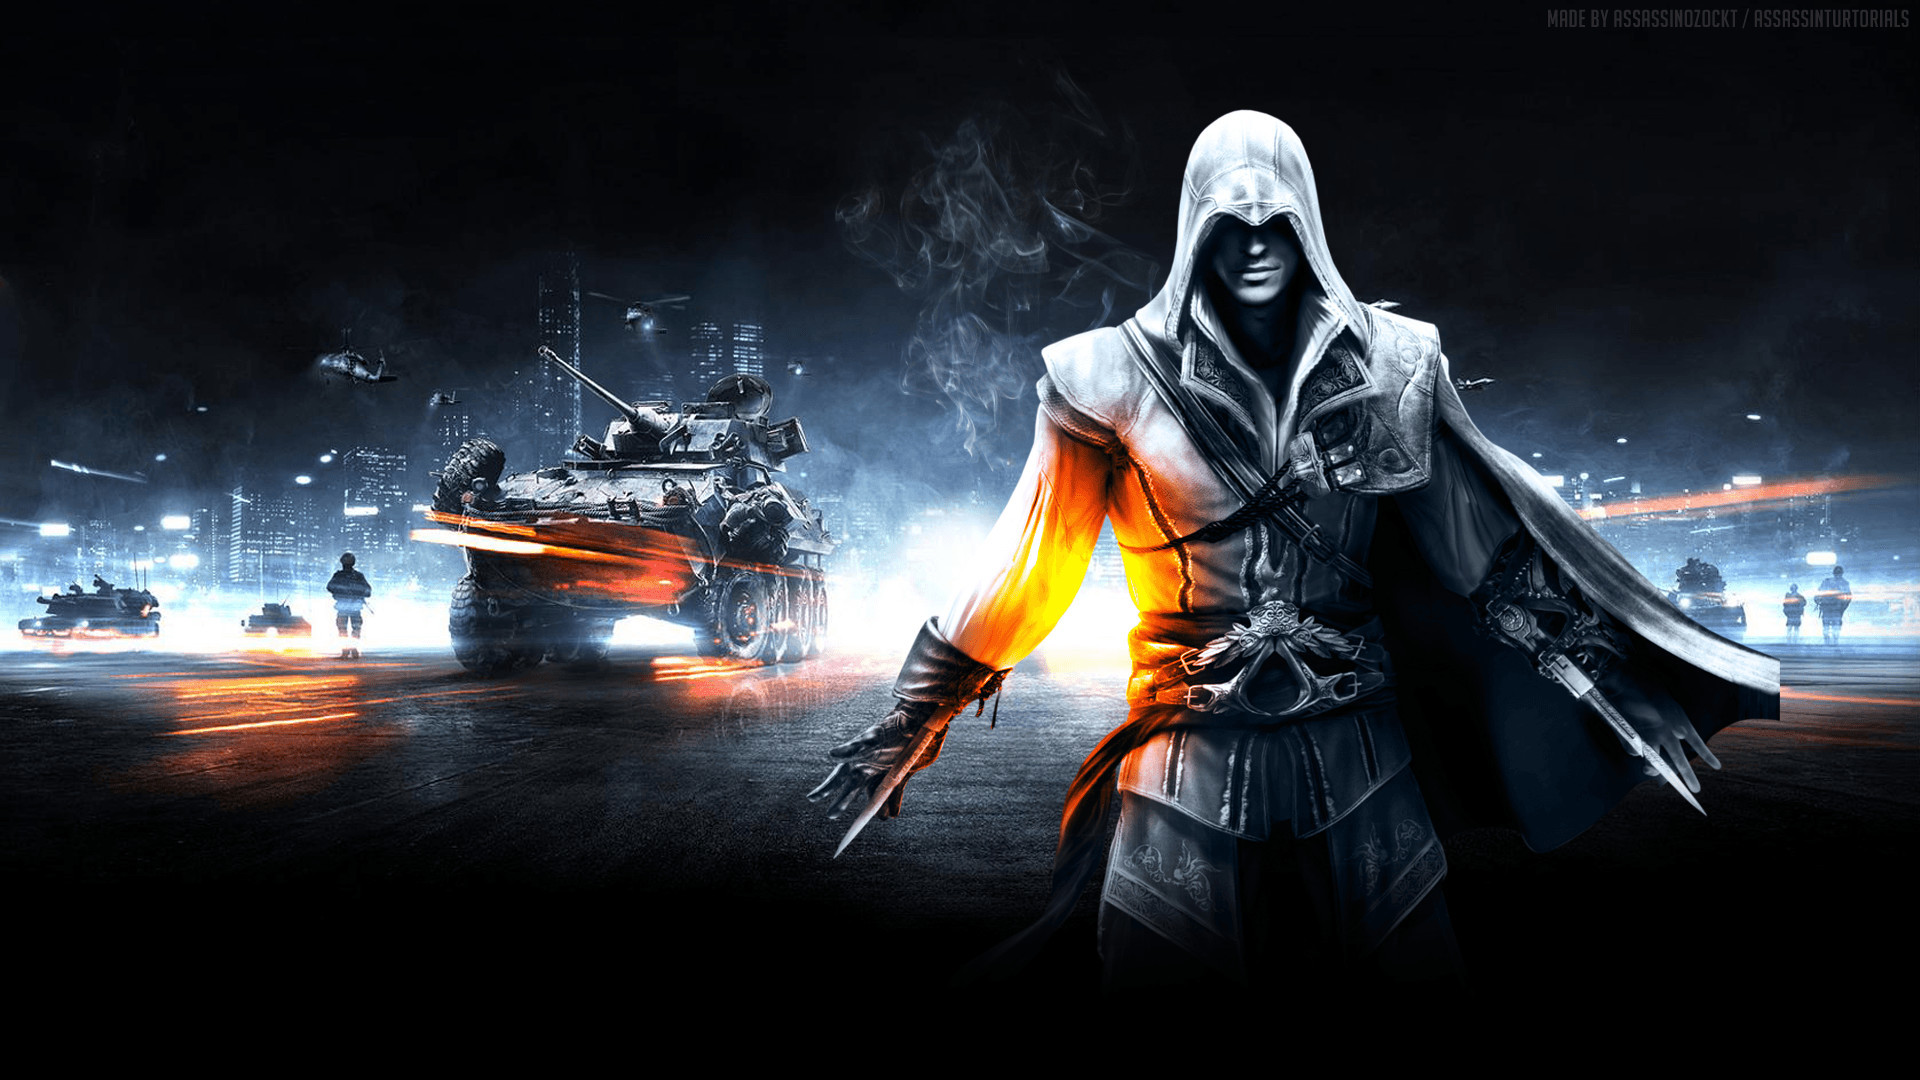 Games Computer Wallpapers - Top Free